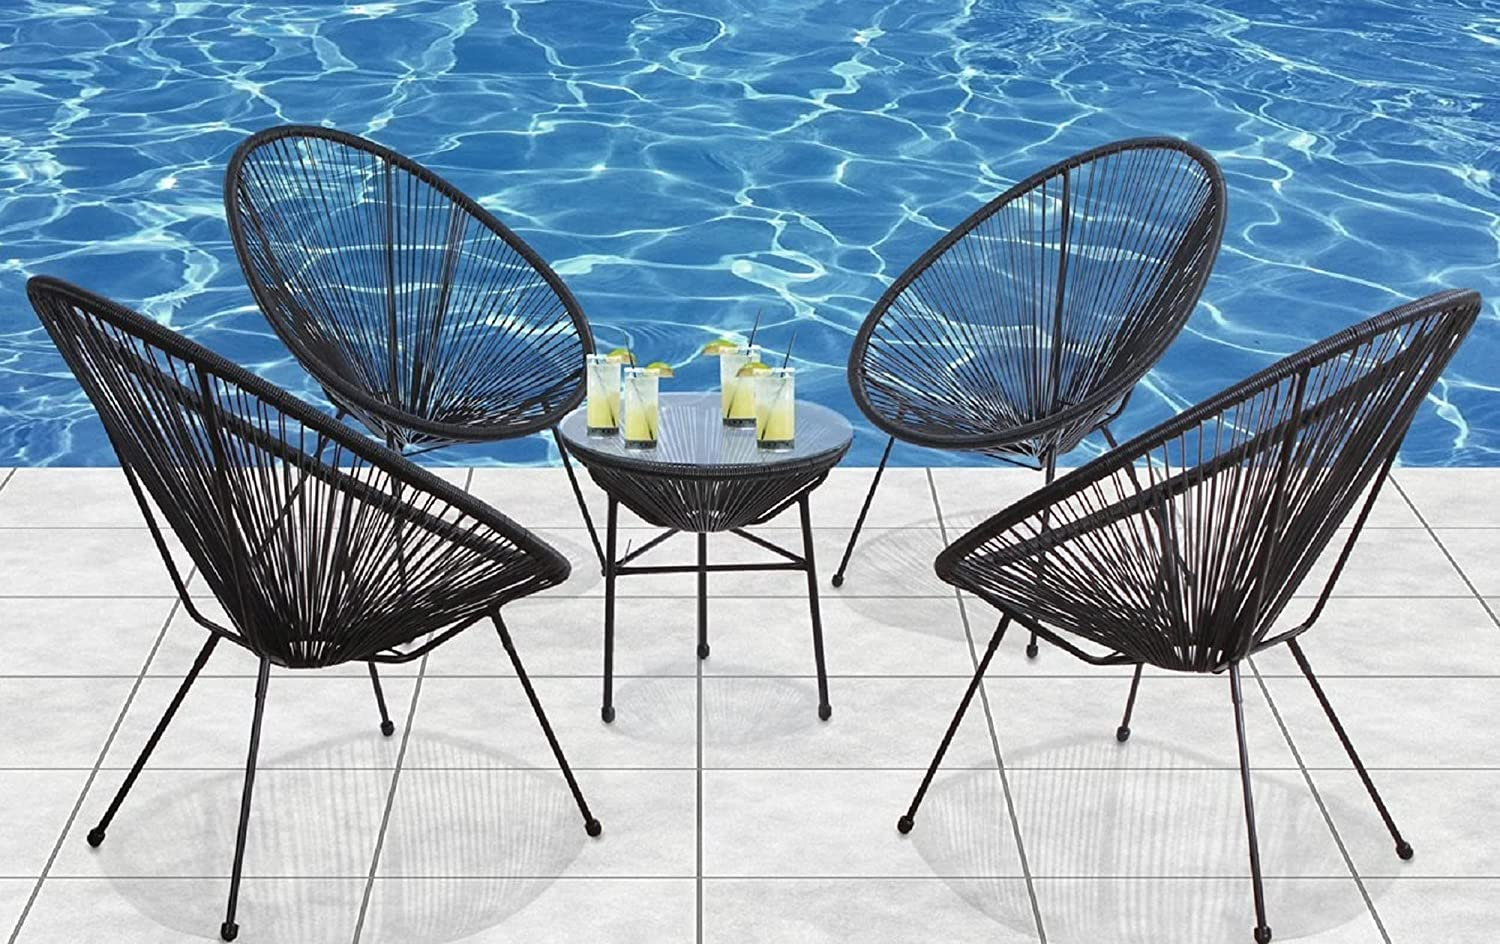 Acapulco Fashionable Woven Lounge Chair for Ranking TOP1 Indoor Outdoor 4PC and Blac Use